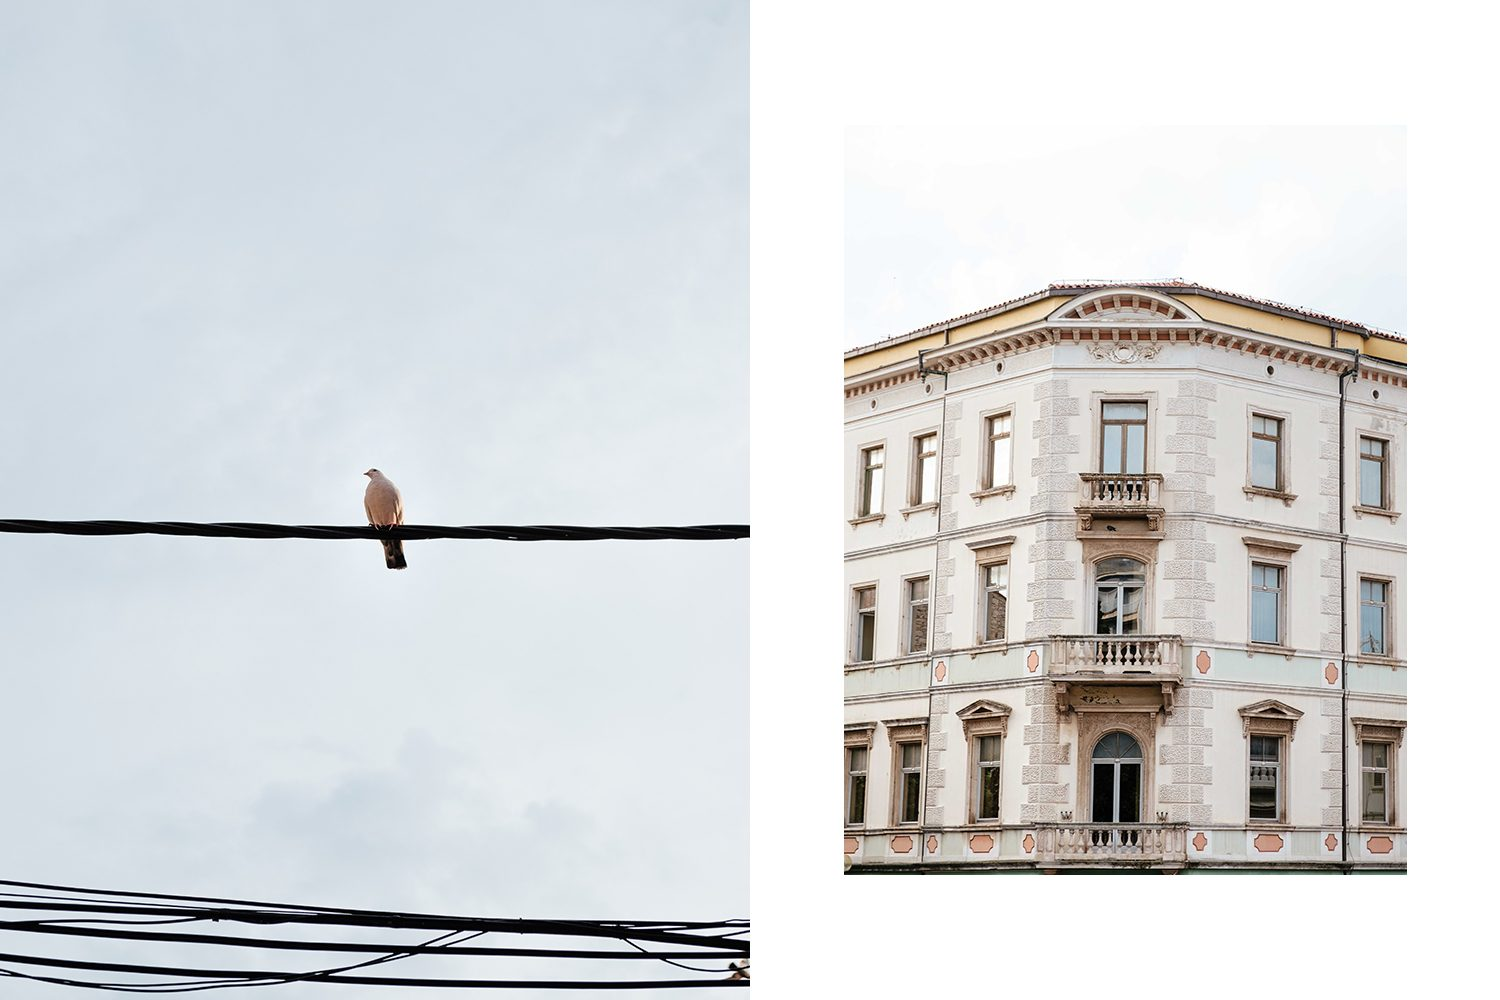 Bird and building